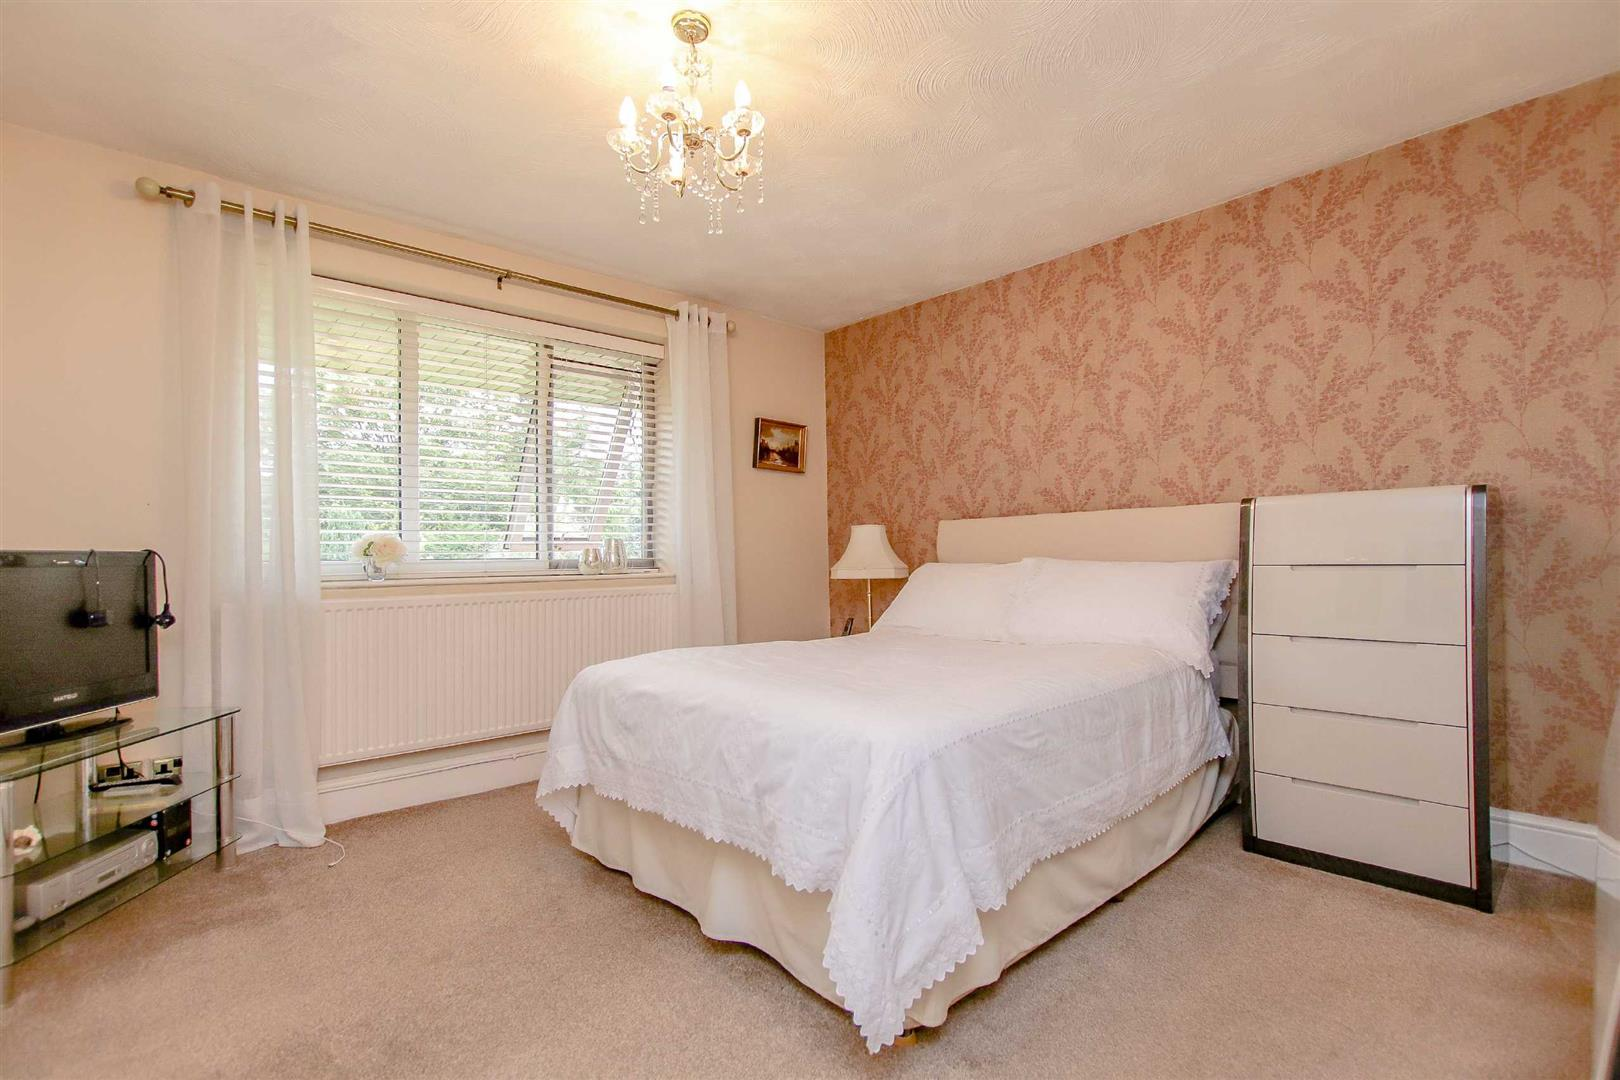 3 Bedroom Detached Bungalow For Sale - Image 6